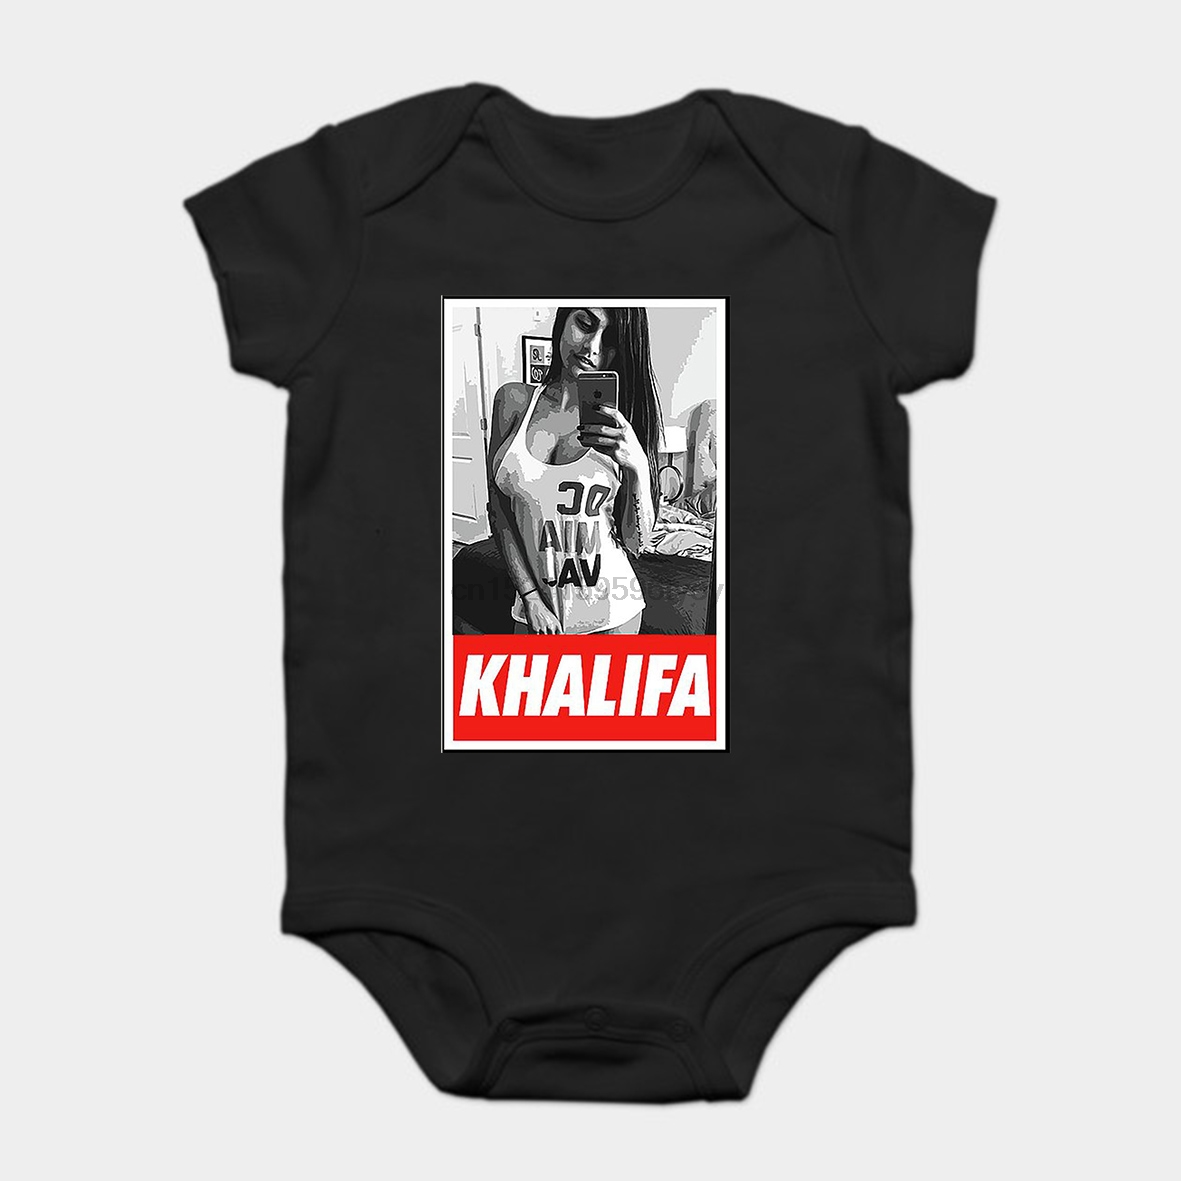 Gay All Day Printed Unisex Baby Sleeveless Bodysuit Jumpsuit Outfits